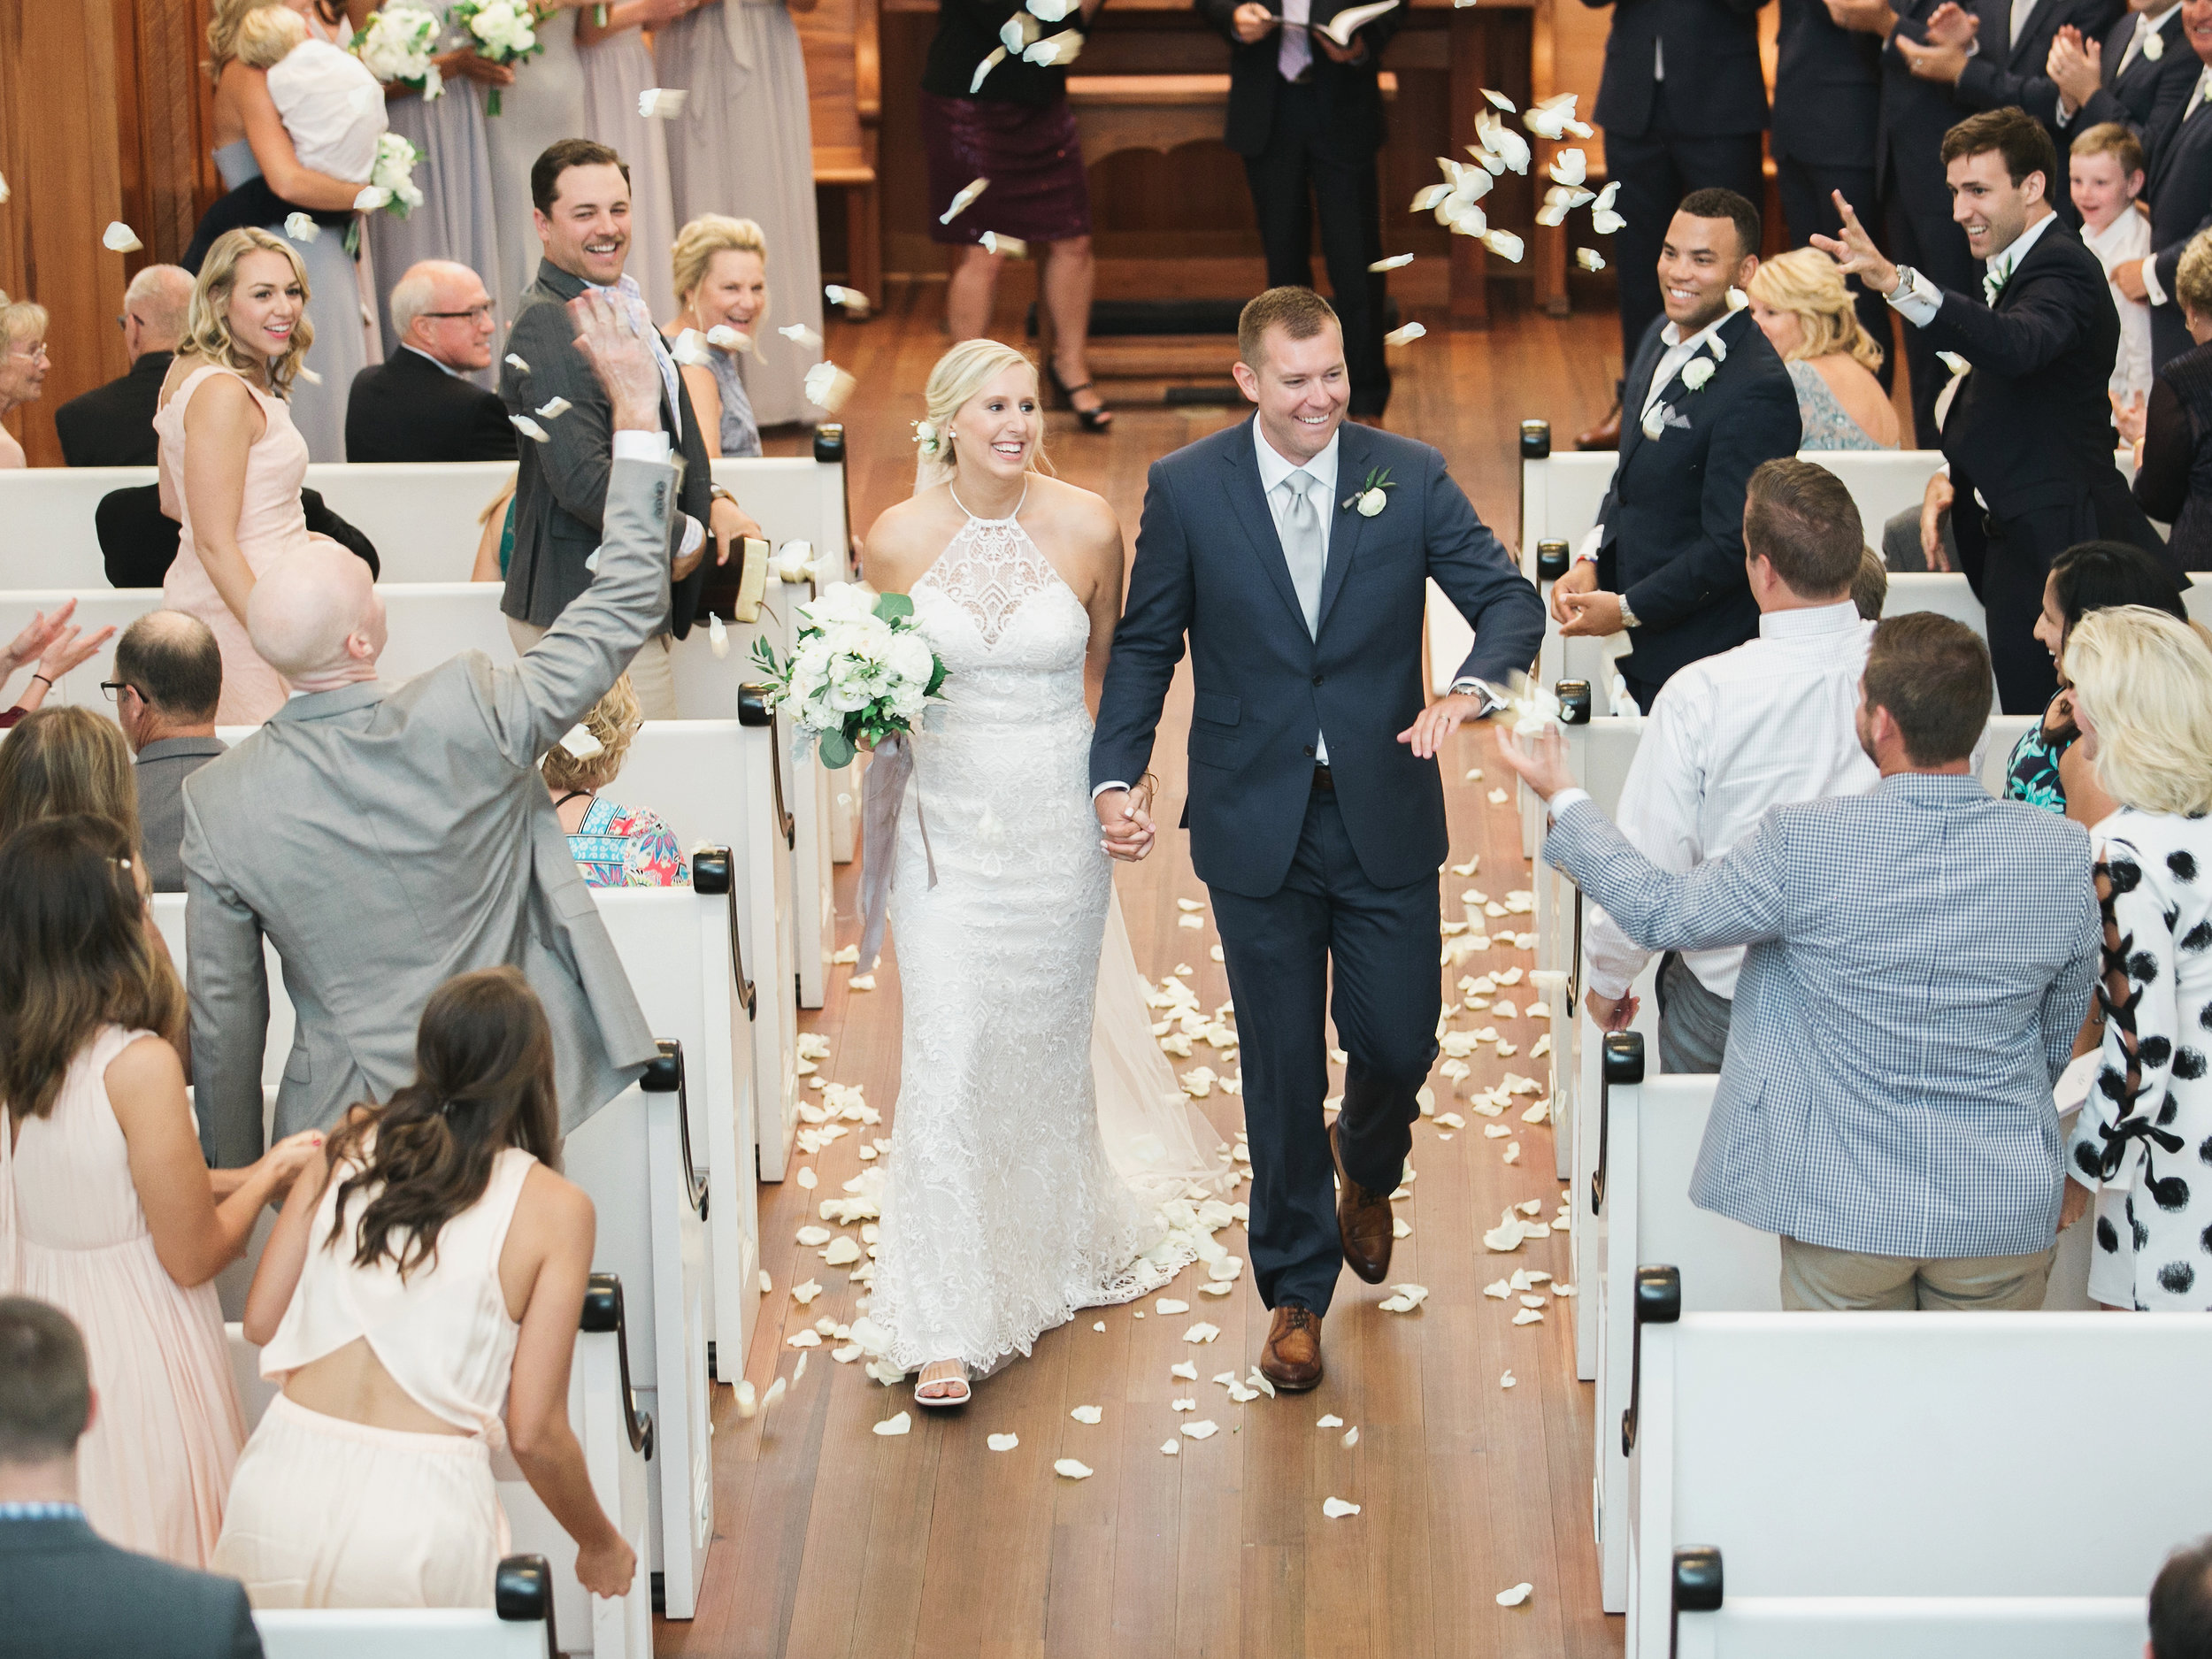 Seaside Chapel Wedding in Seaside, Florida